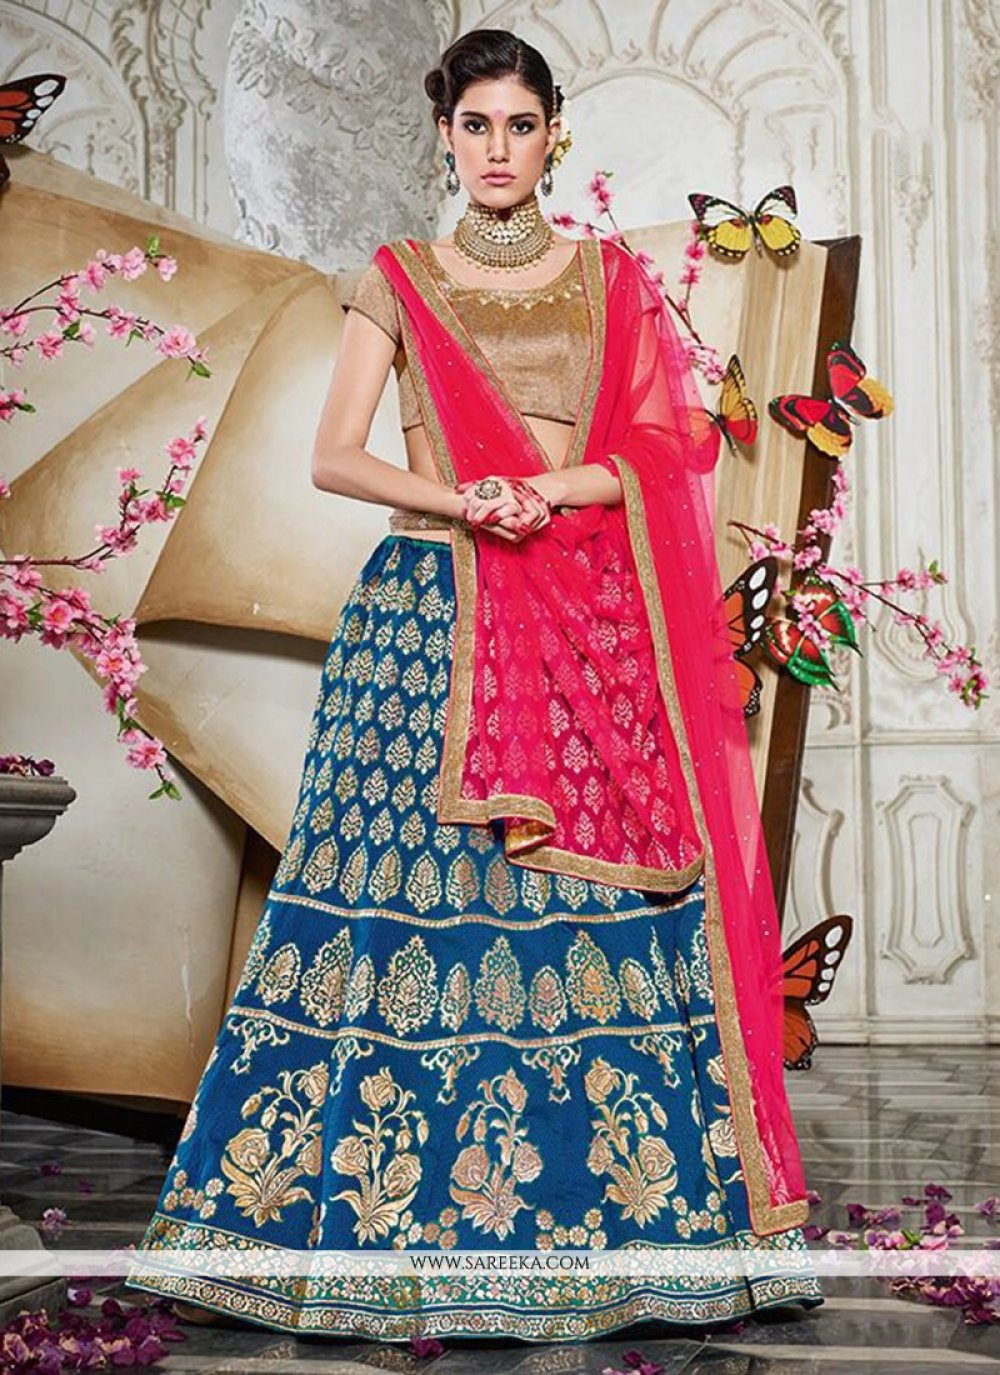 Lace Work Blue and Hot Pink Lehenga Choli